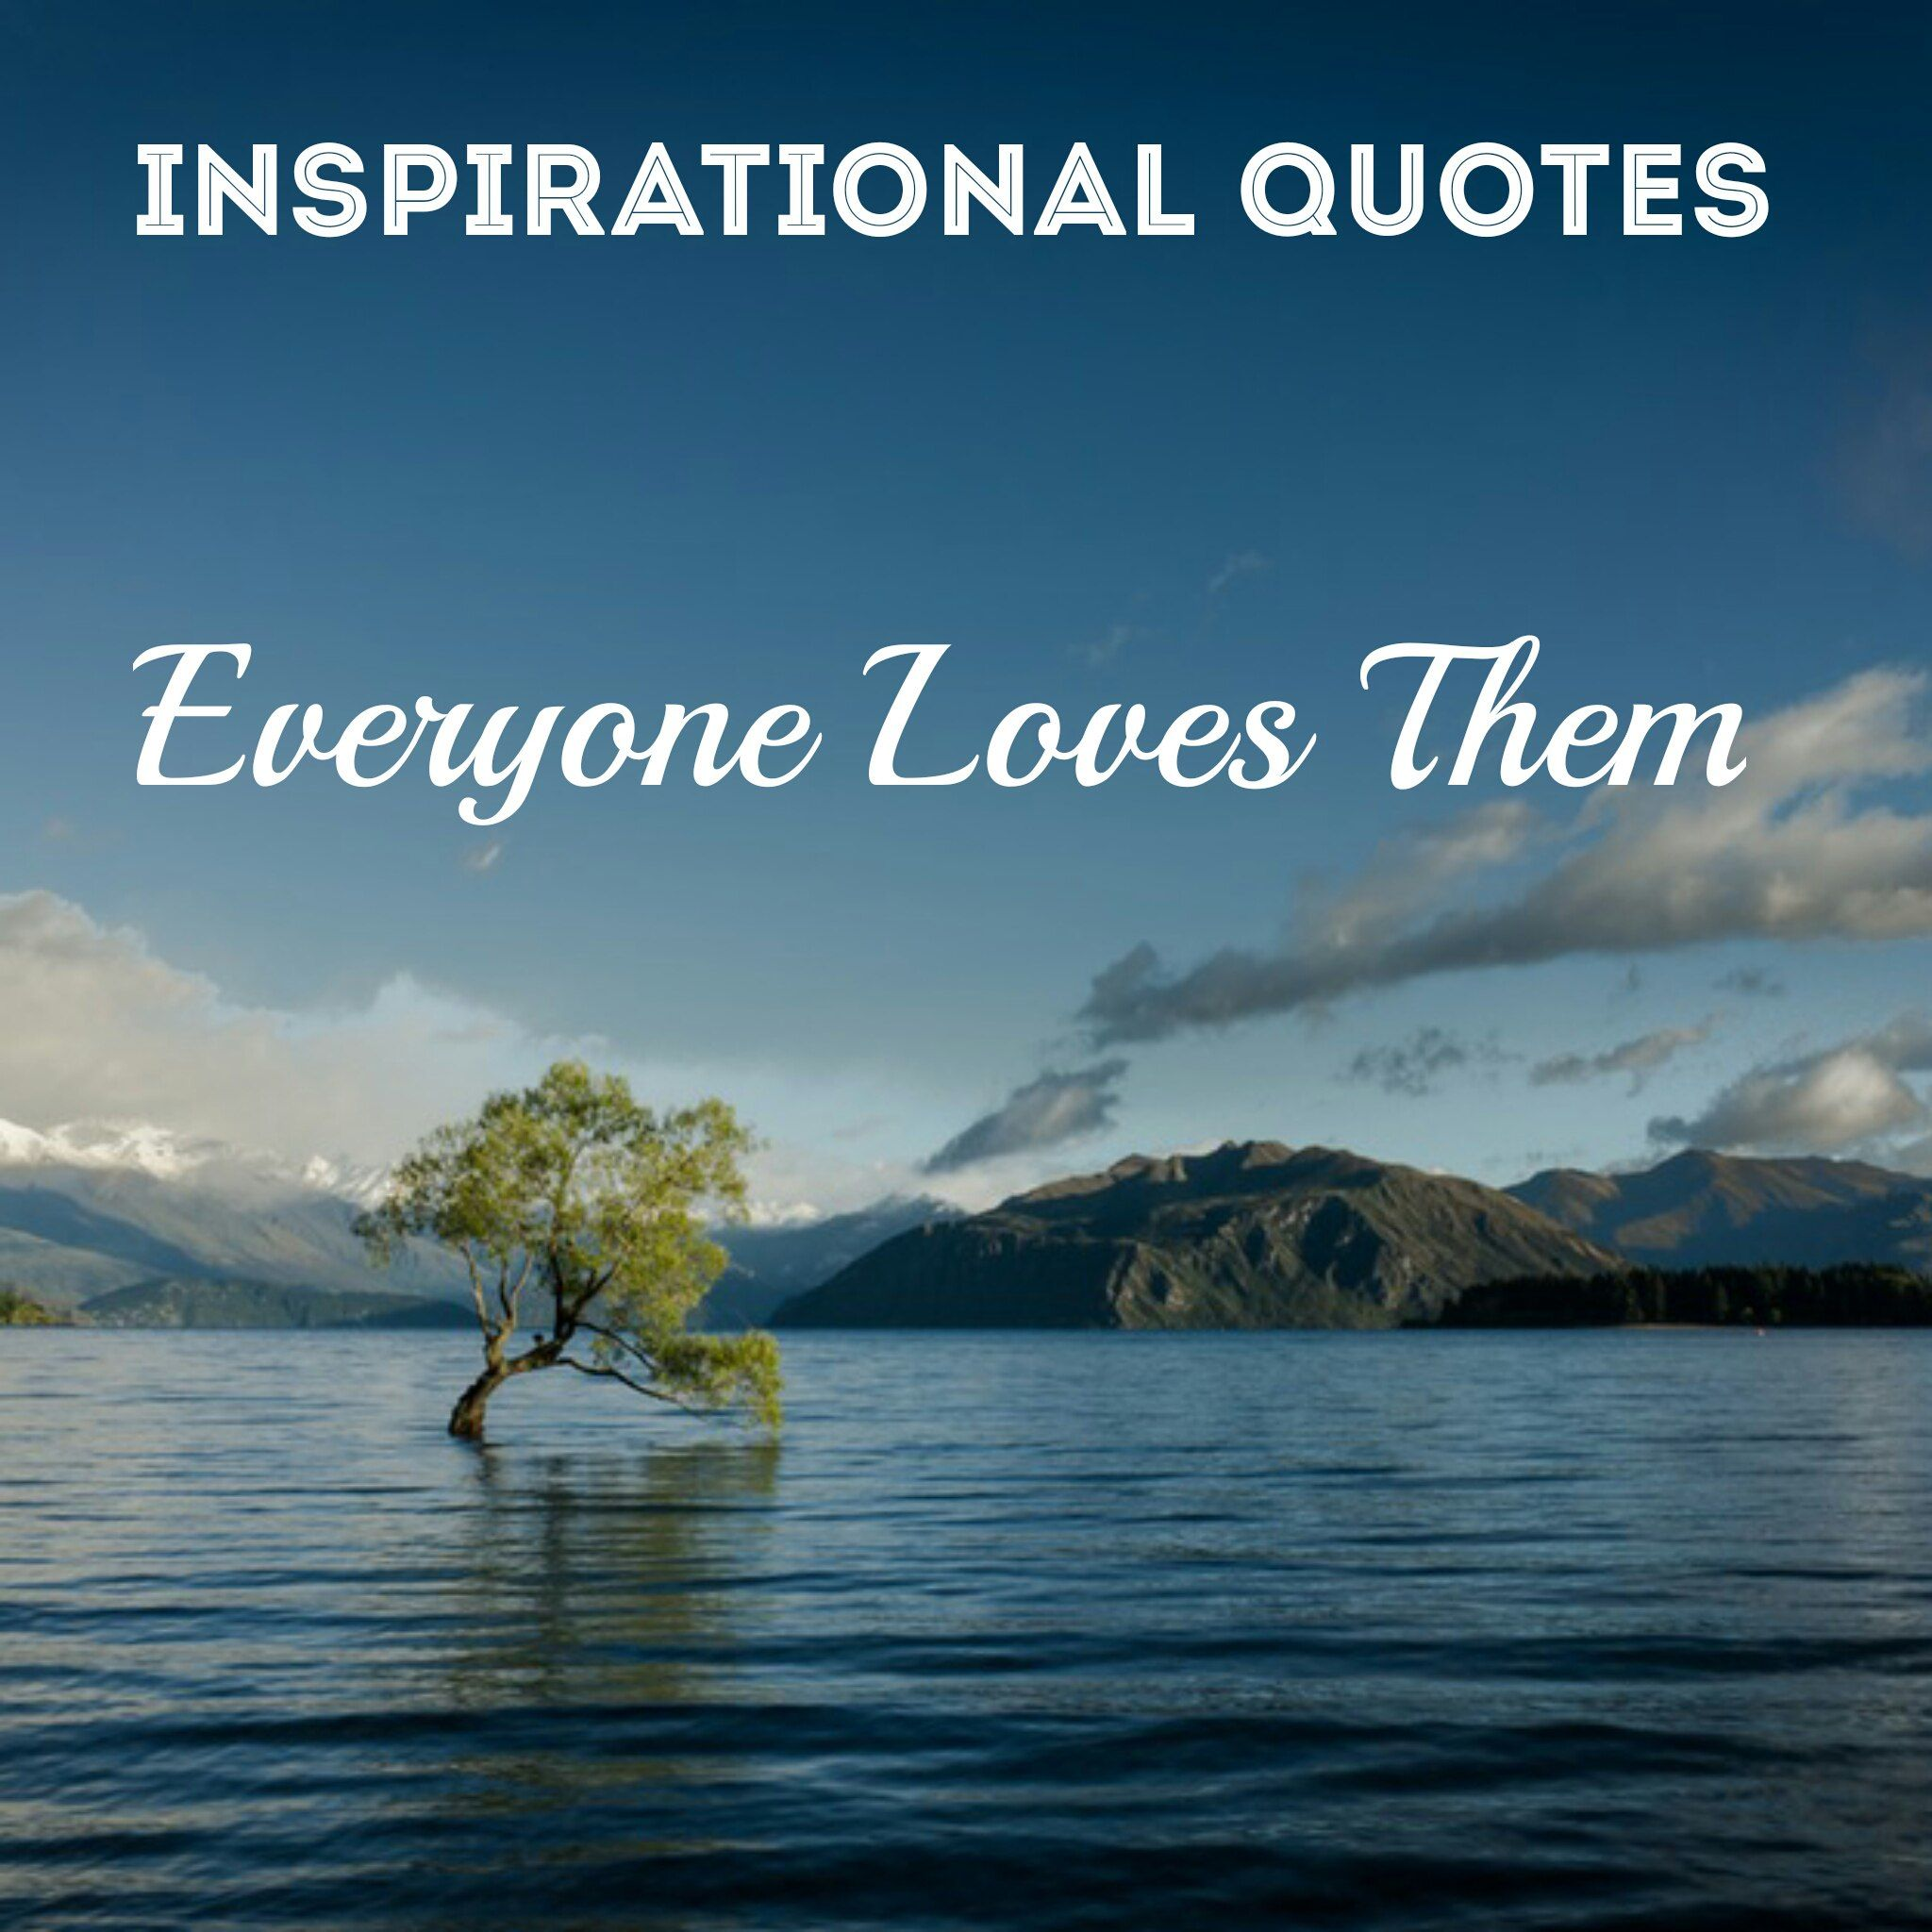 Best Uplifting Quotes: 154 Best Inspirational Quotes & Sayings Of All Time